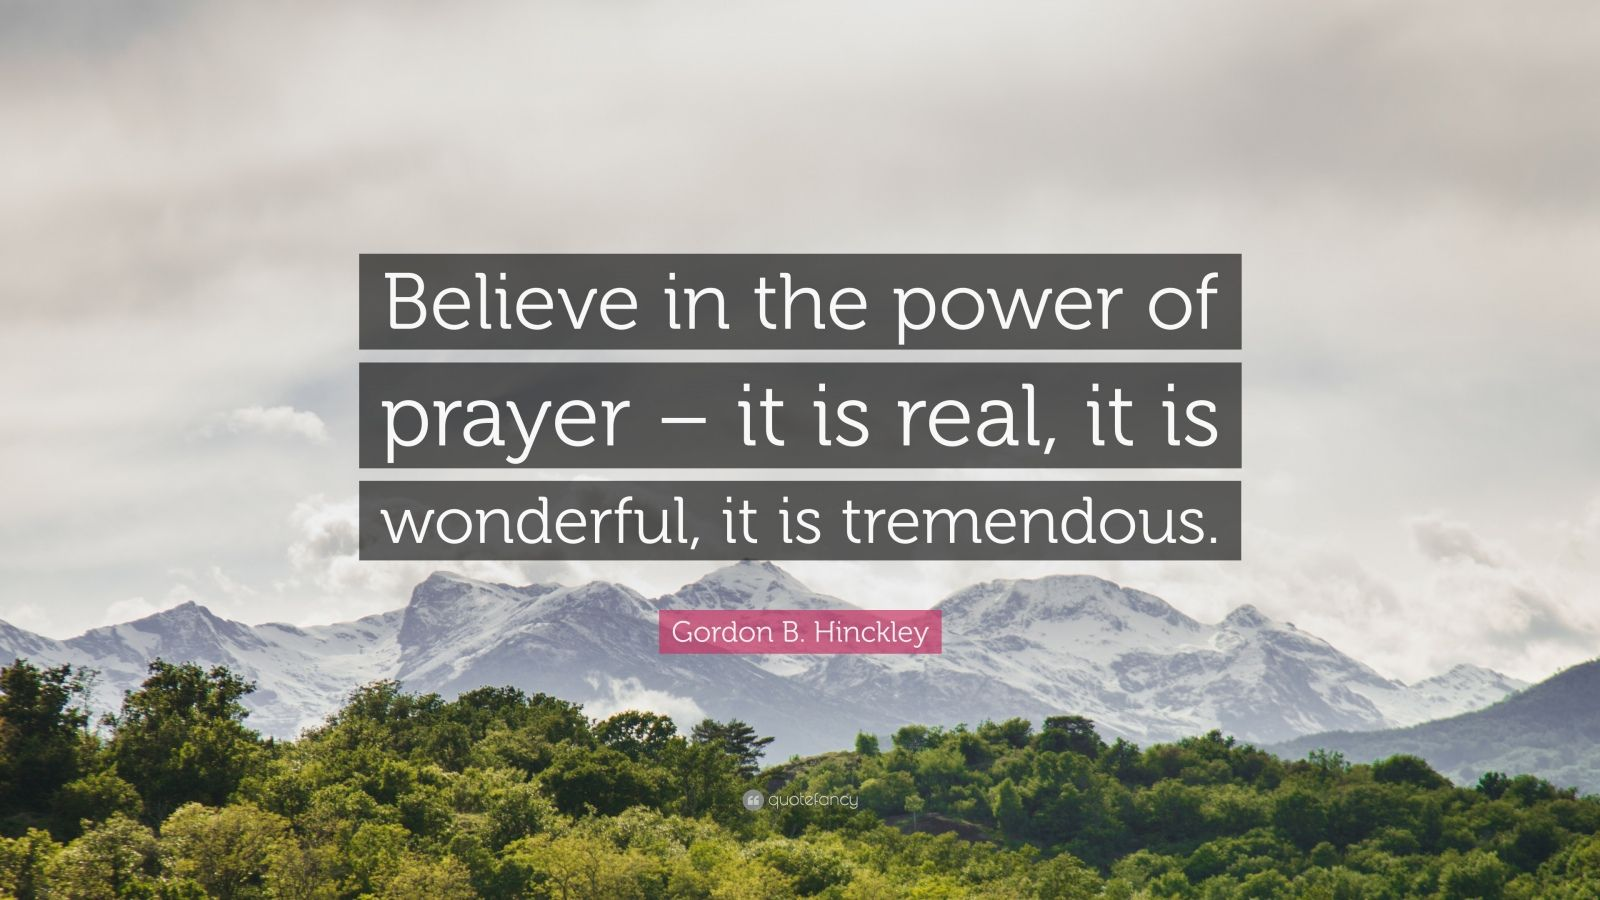 """Gordon B. Hinckley Quote: """"Believe in the power of prayer – it is real, it is wonderful, it is tremendous."""""""